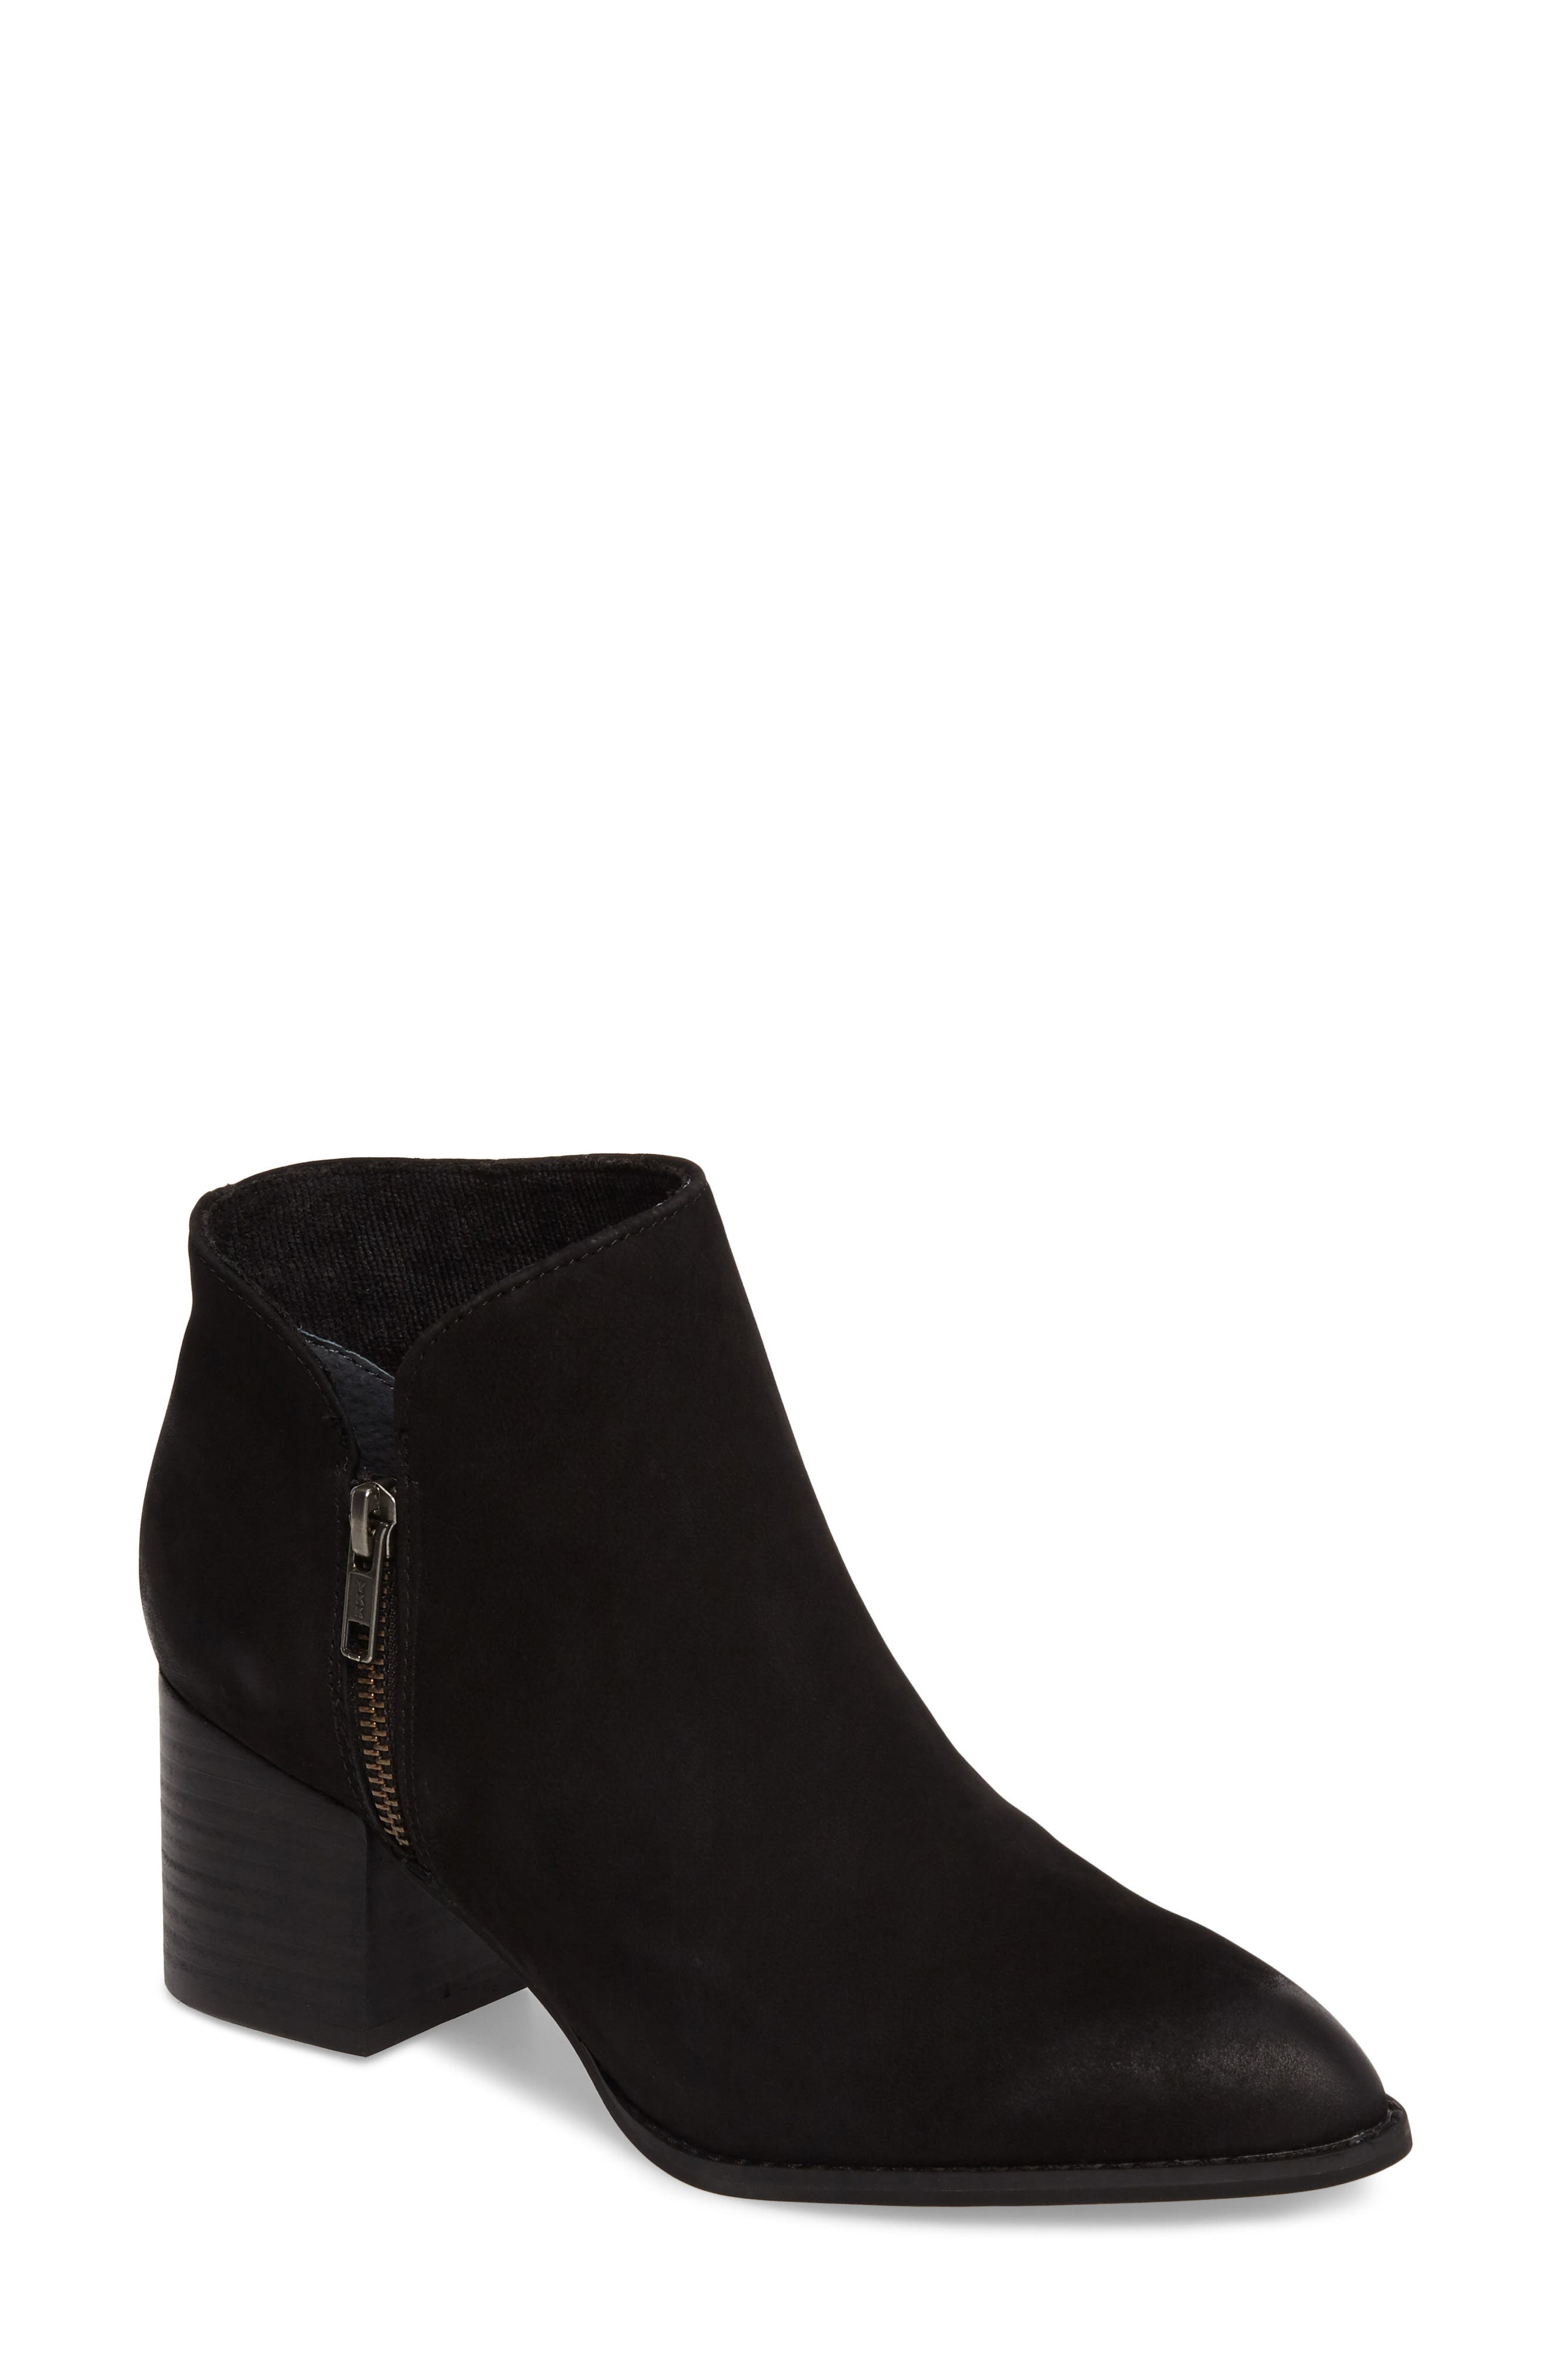 Chaparral Bootie,                             Main thumbnail 1, color,                             Black Leather